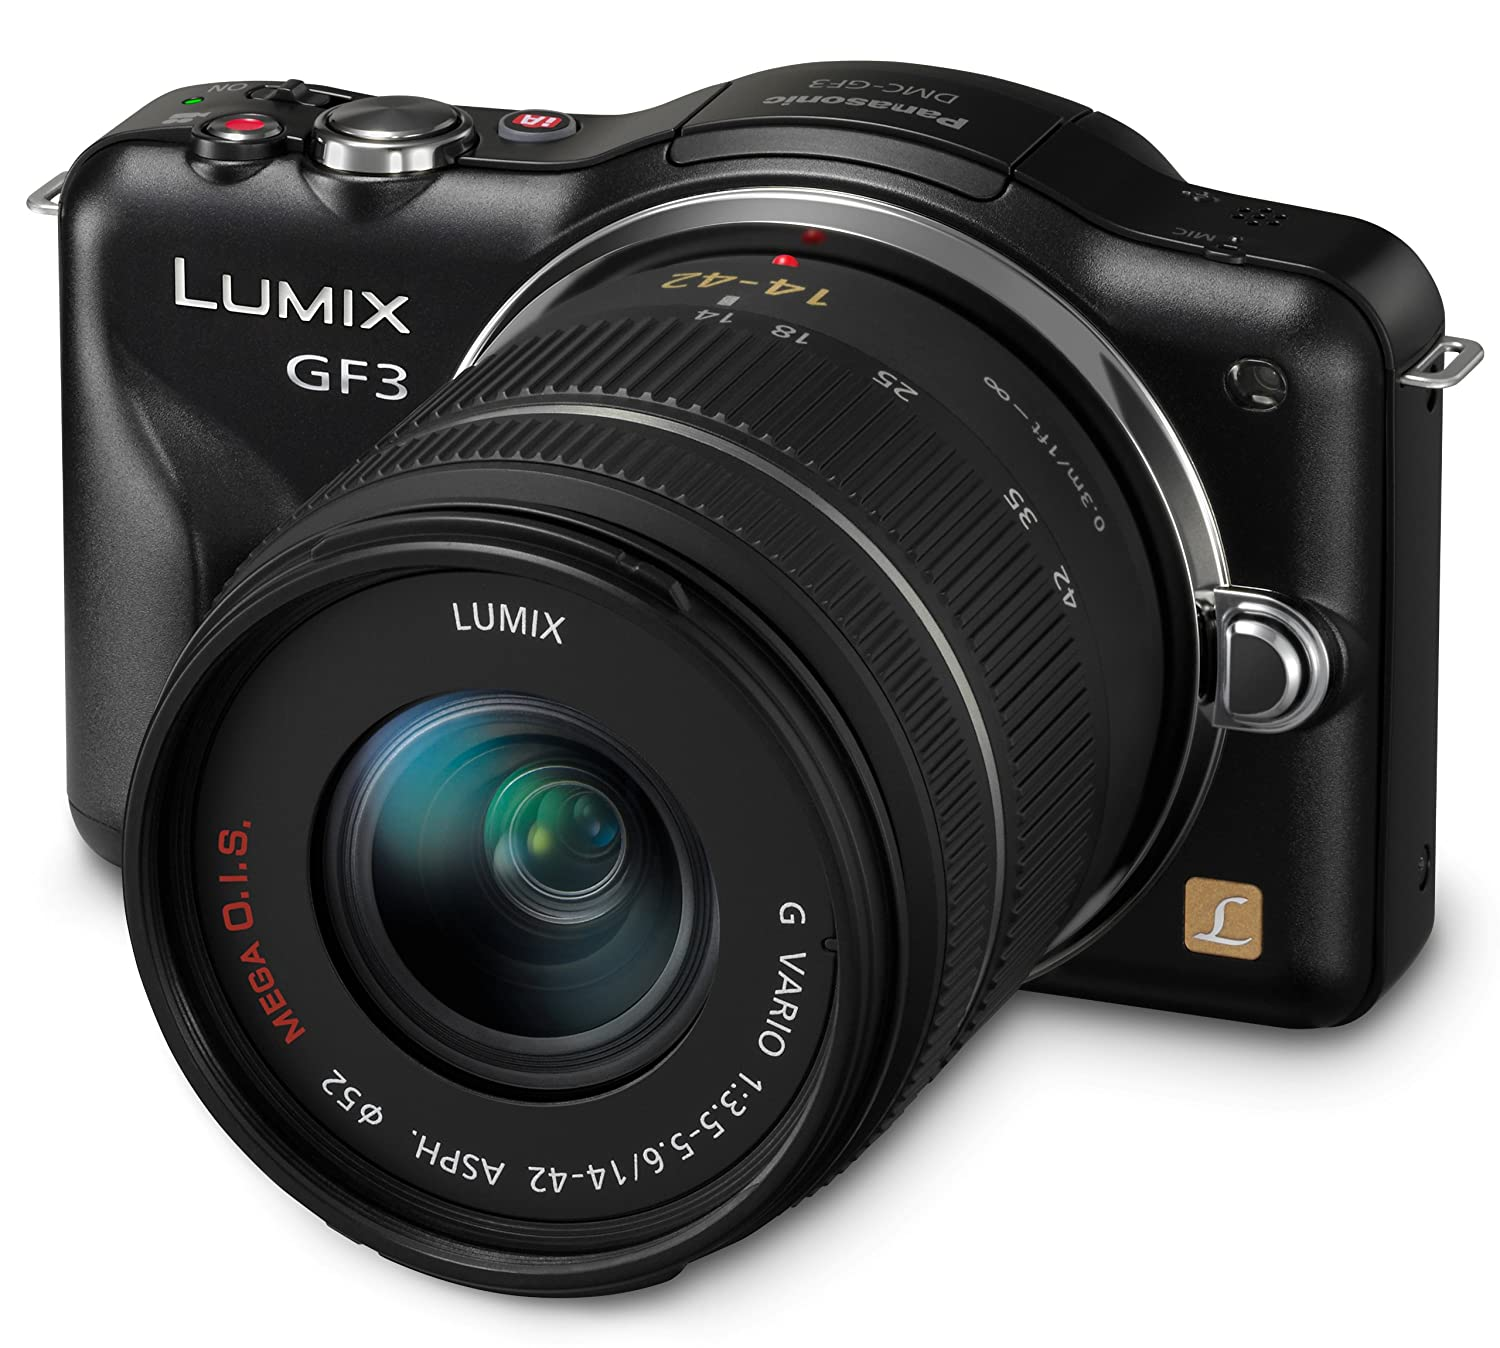 Up to 50% Off Select Panasonic LUMIX G-Series Compact System Cameras.